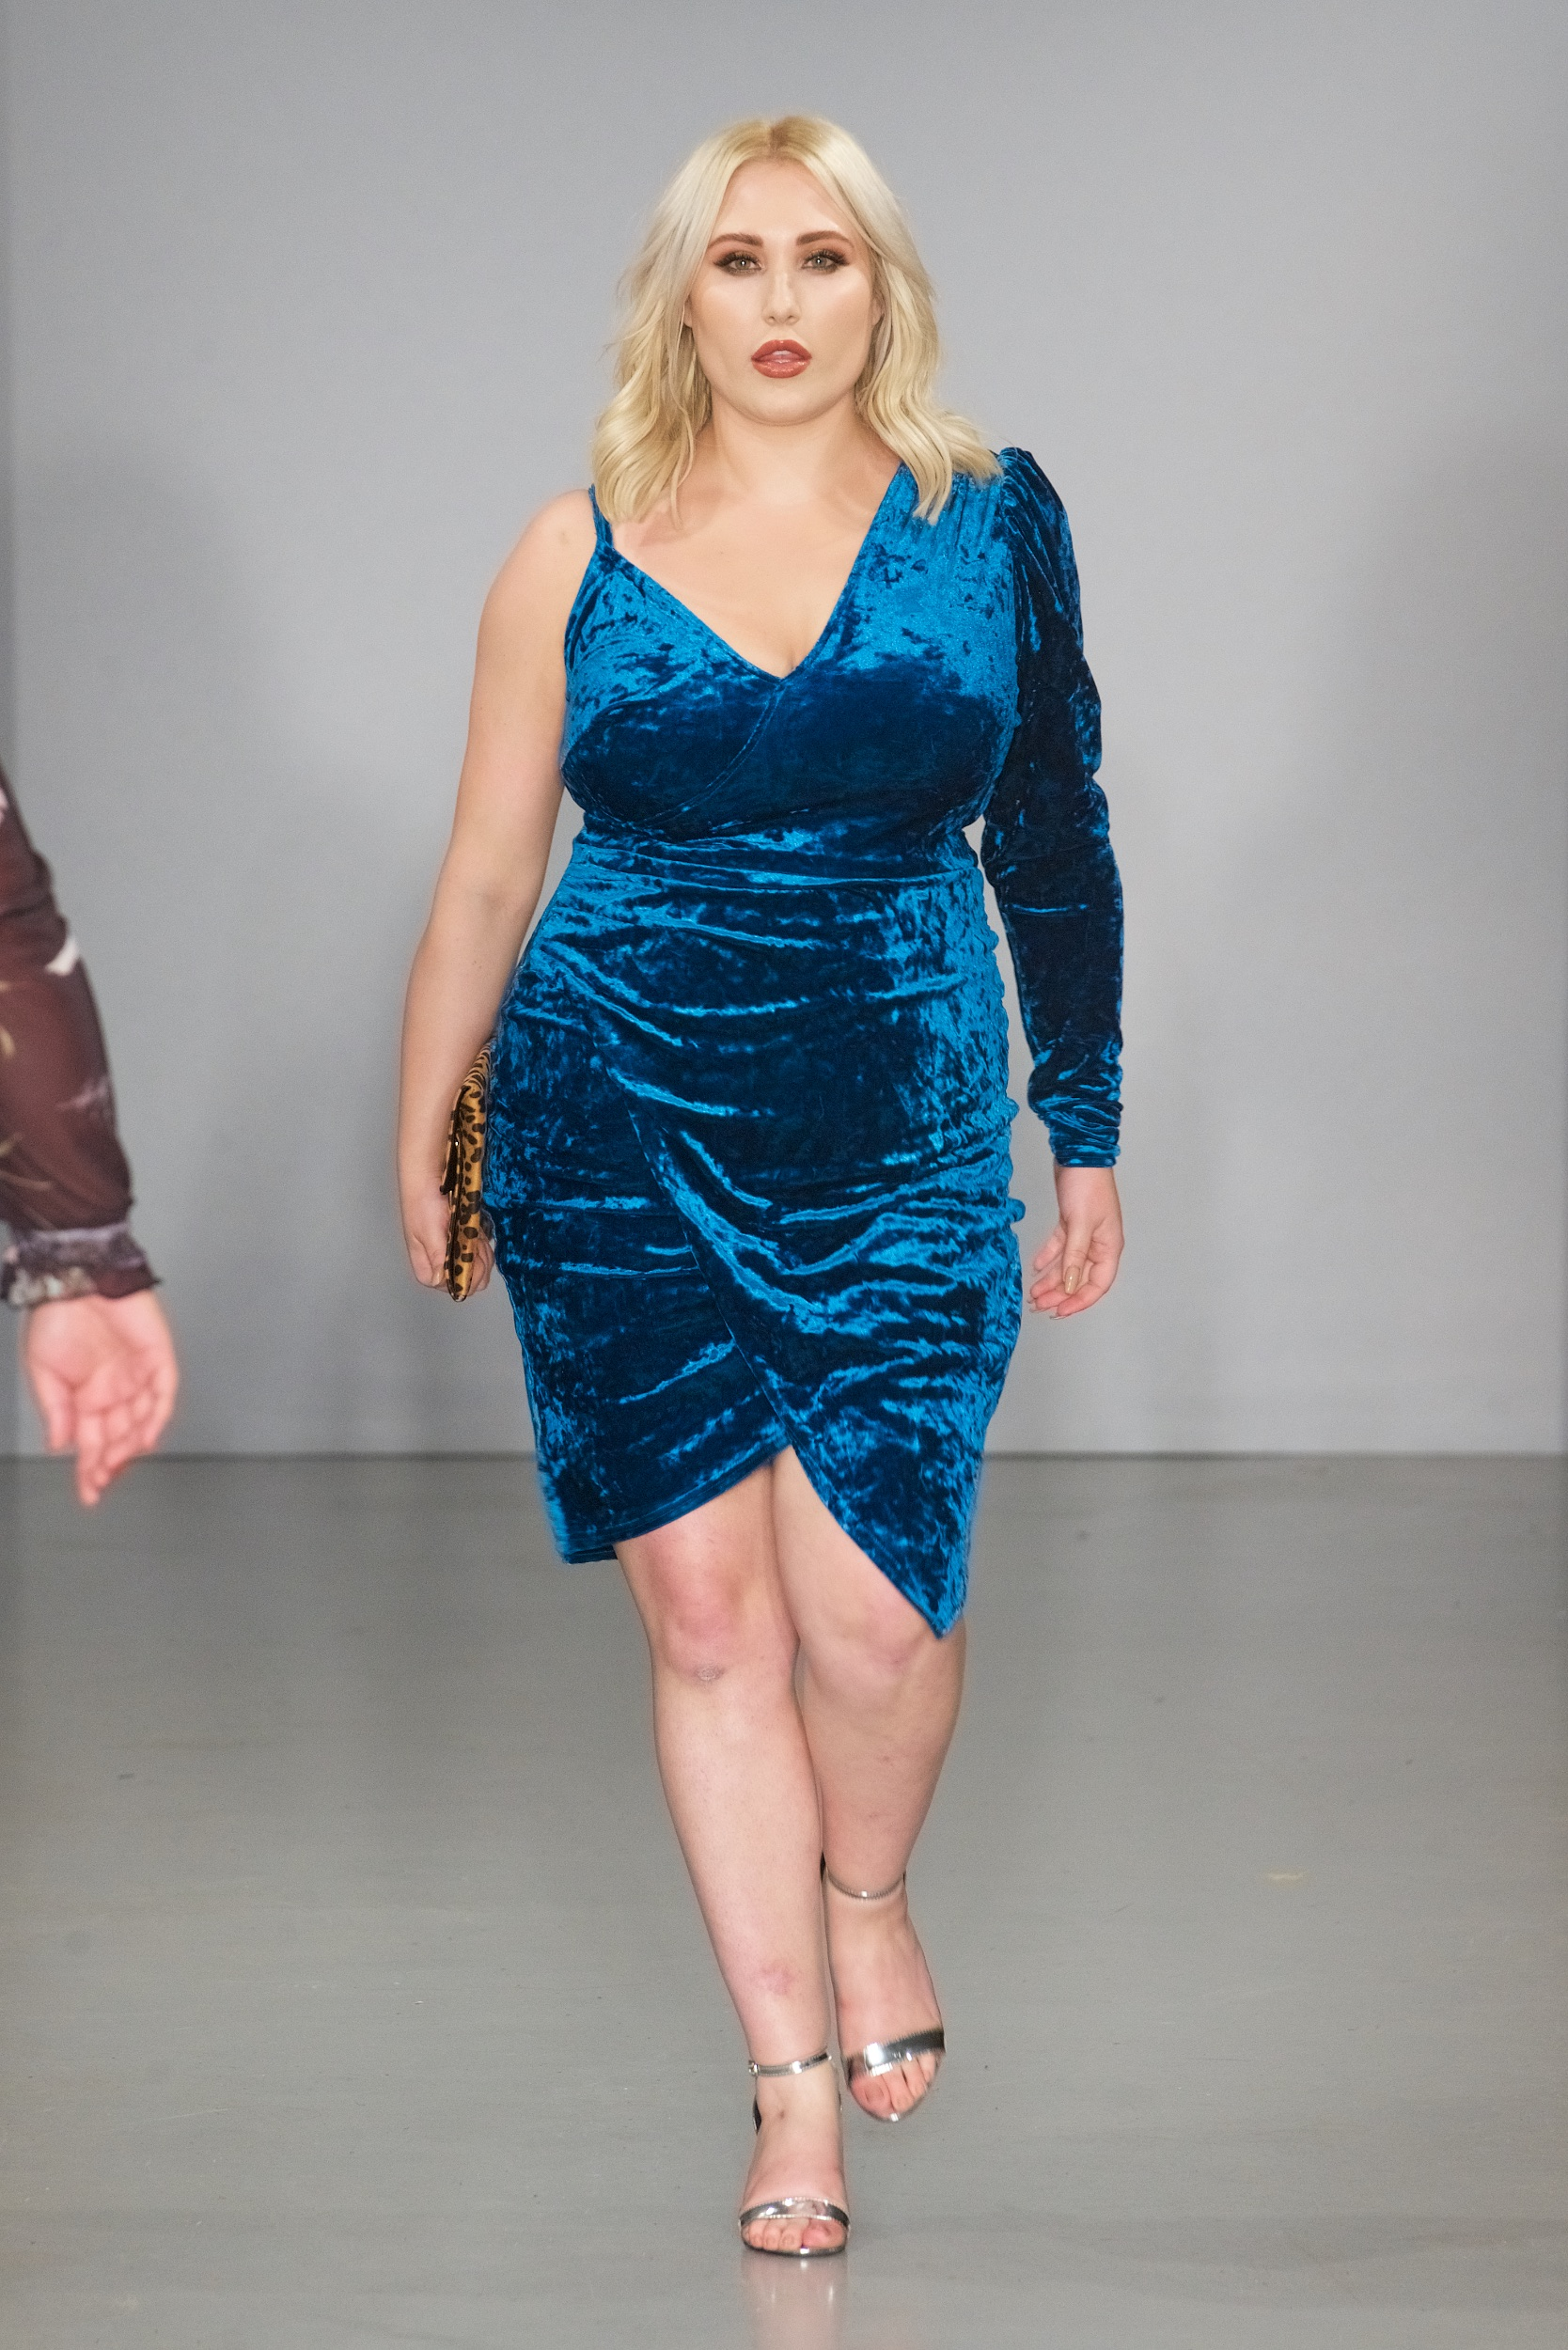 Hayley Hasselhoff photoshoot